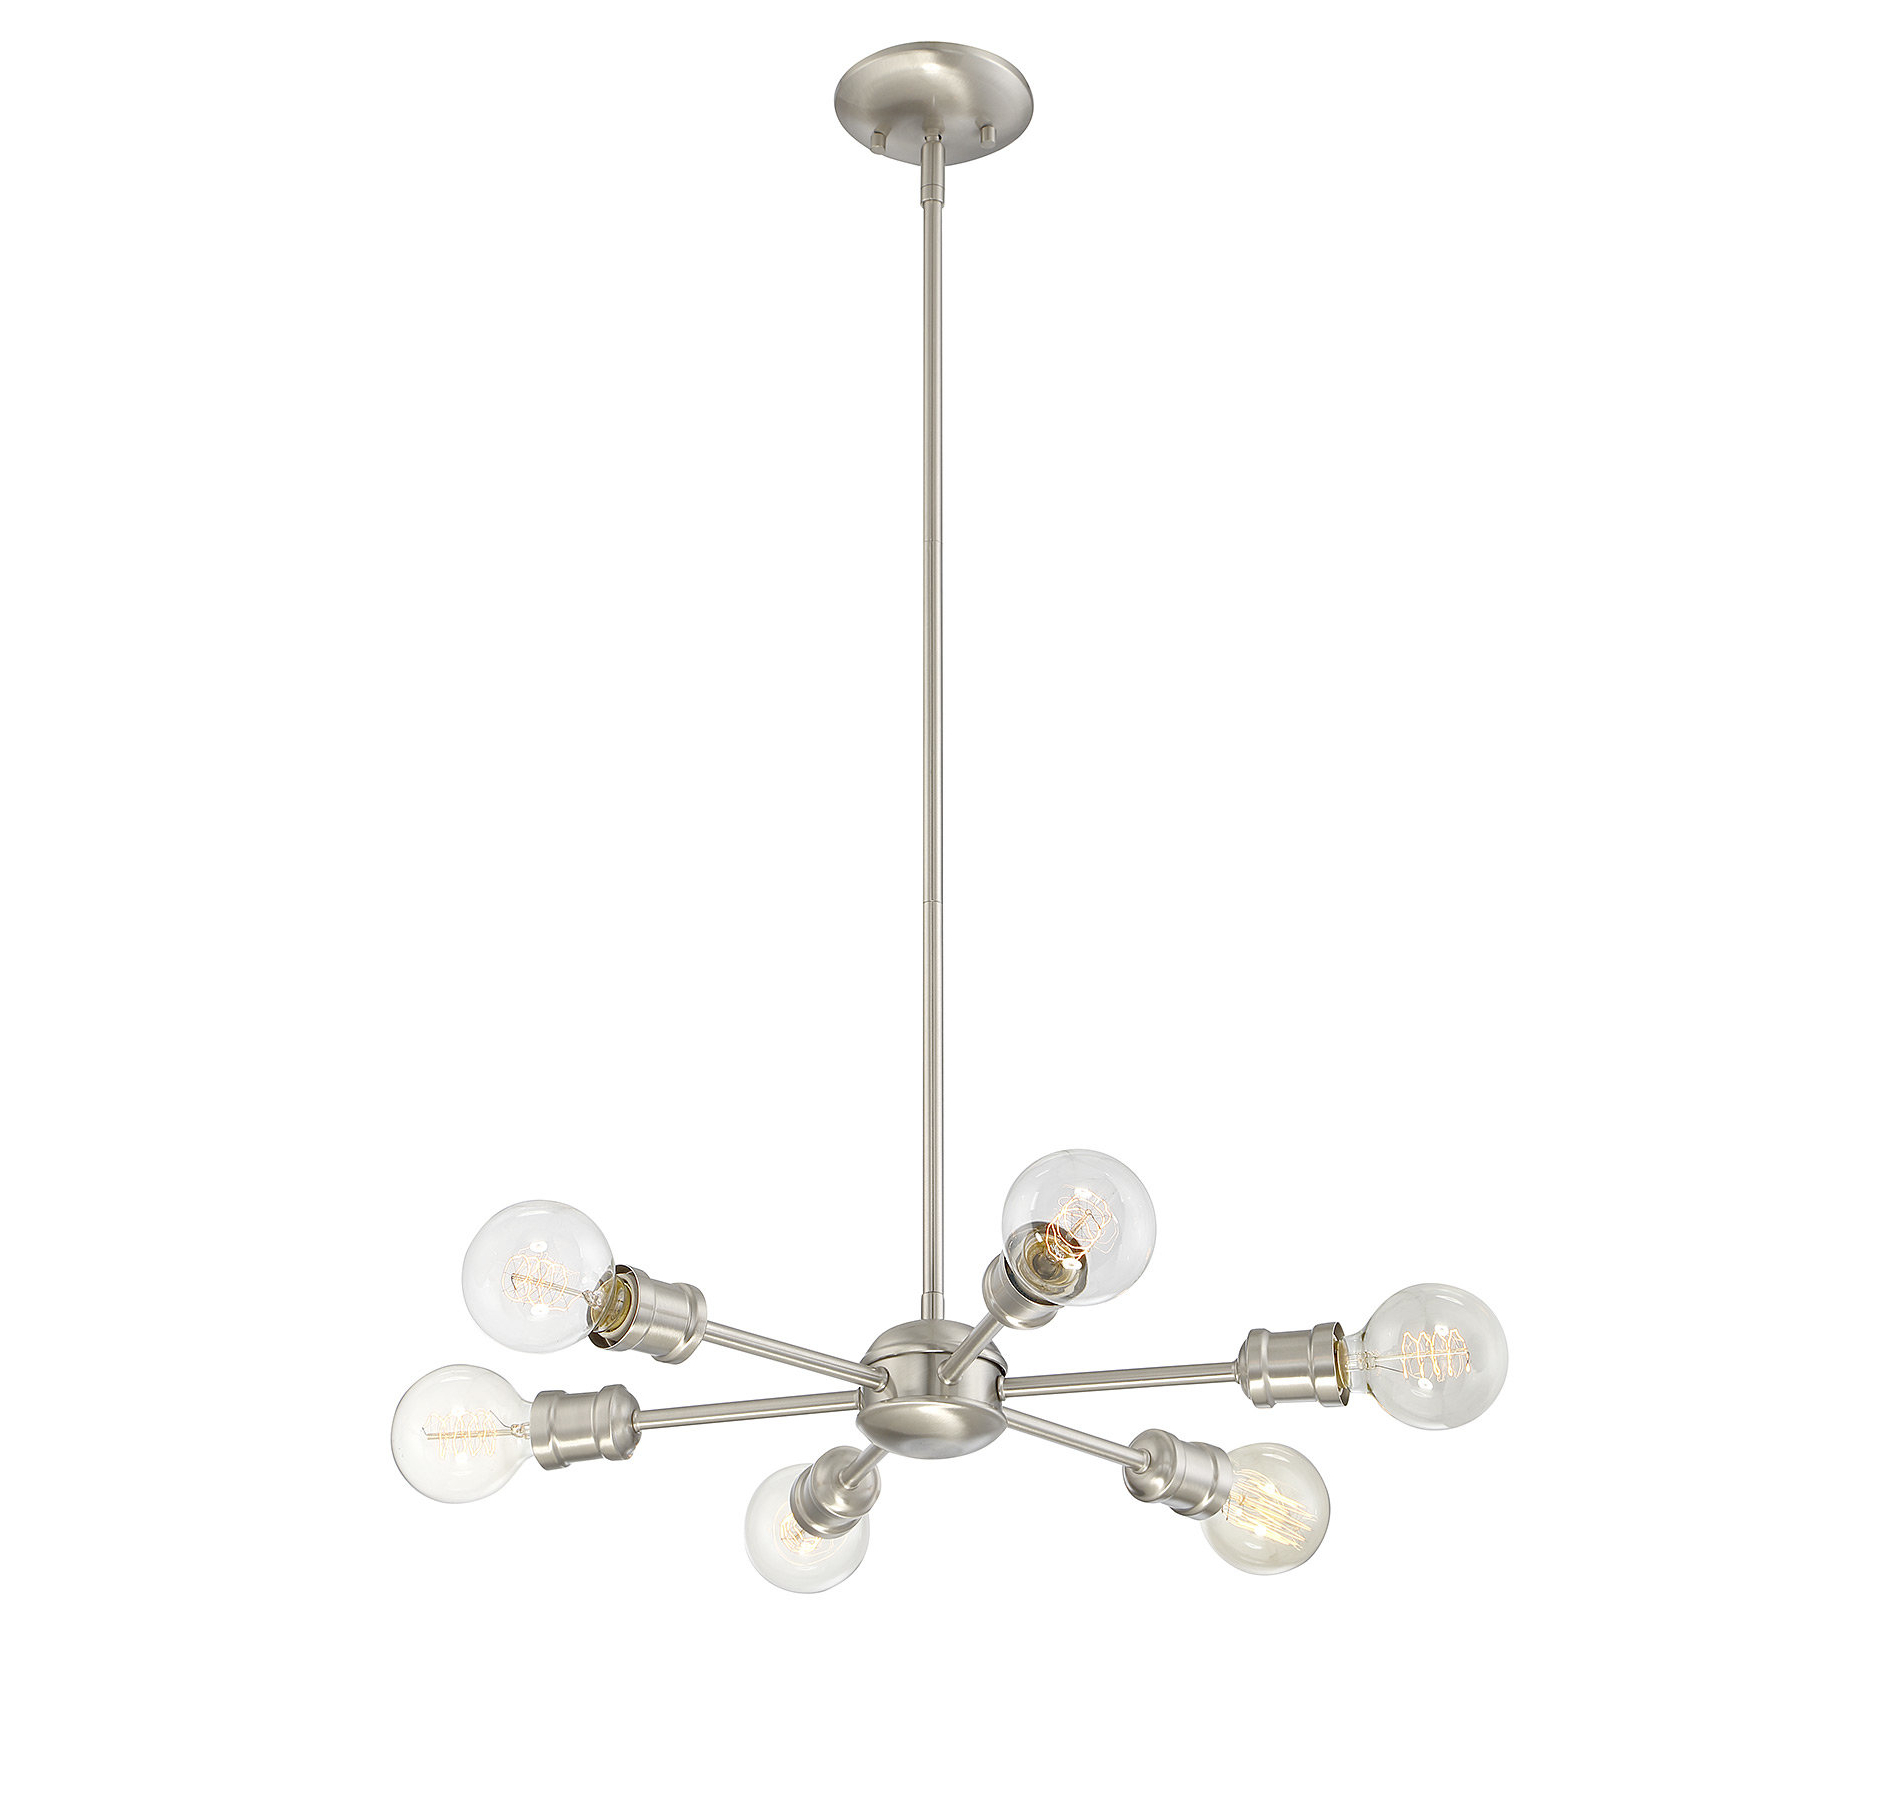 Bautista 6 Light Kitchen Island Bulb Pendants Throughout Widely Used Bautista 6 Light Sputnik Chandelier (View 4 of 20)